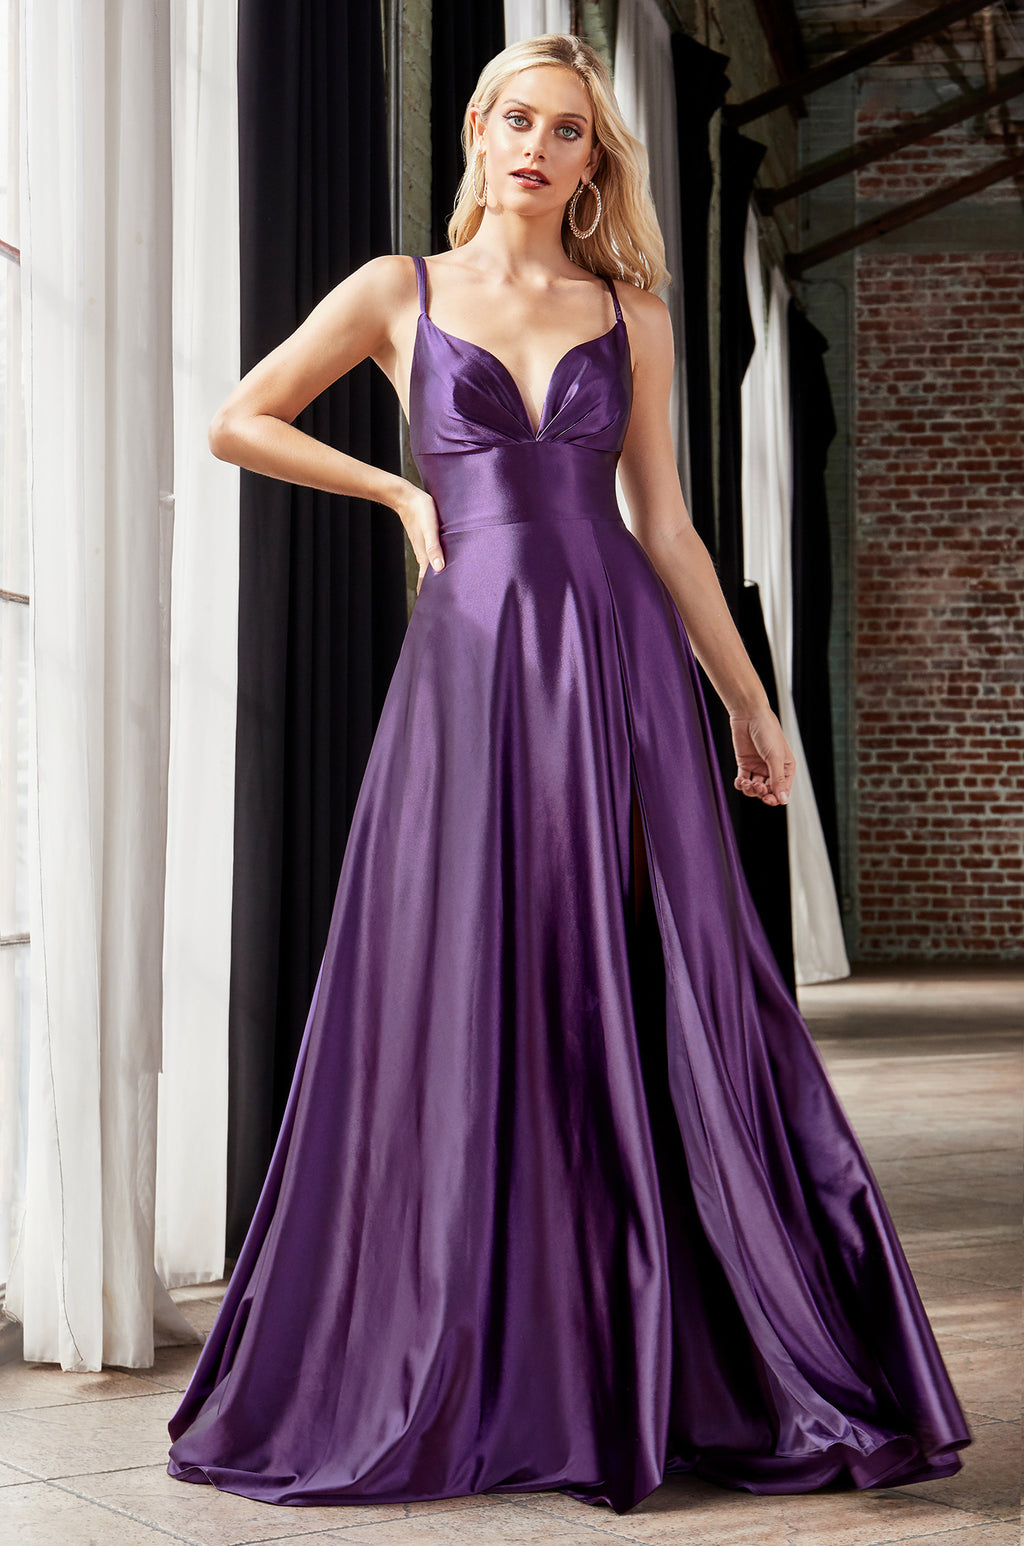 Long Chiffon Dress With Leg Slit Style #LACD903 | Prom 2020